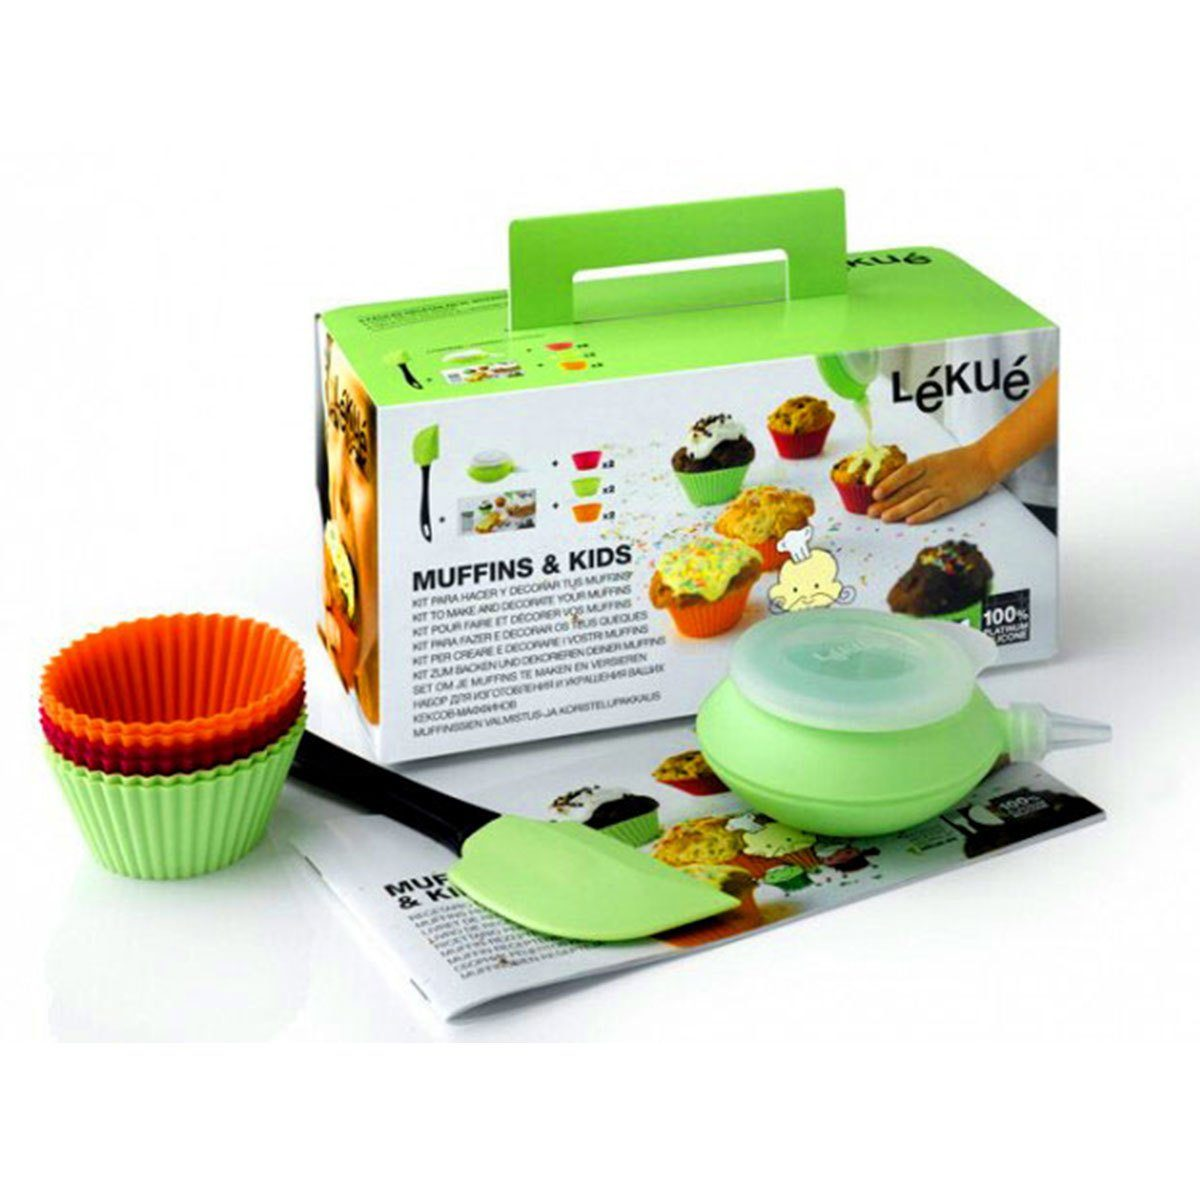 LEKUE Lekue Kinder-Backset MUFFINS KIDS - 9-teilig